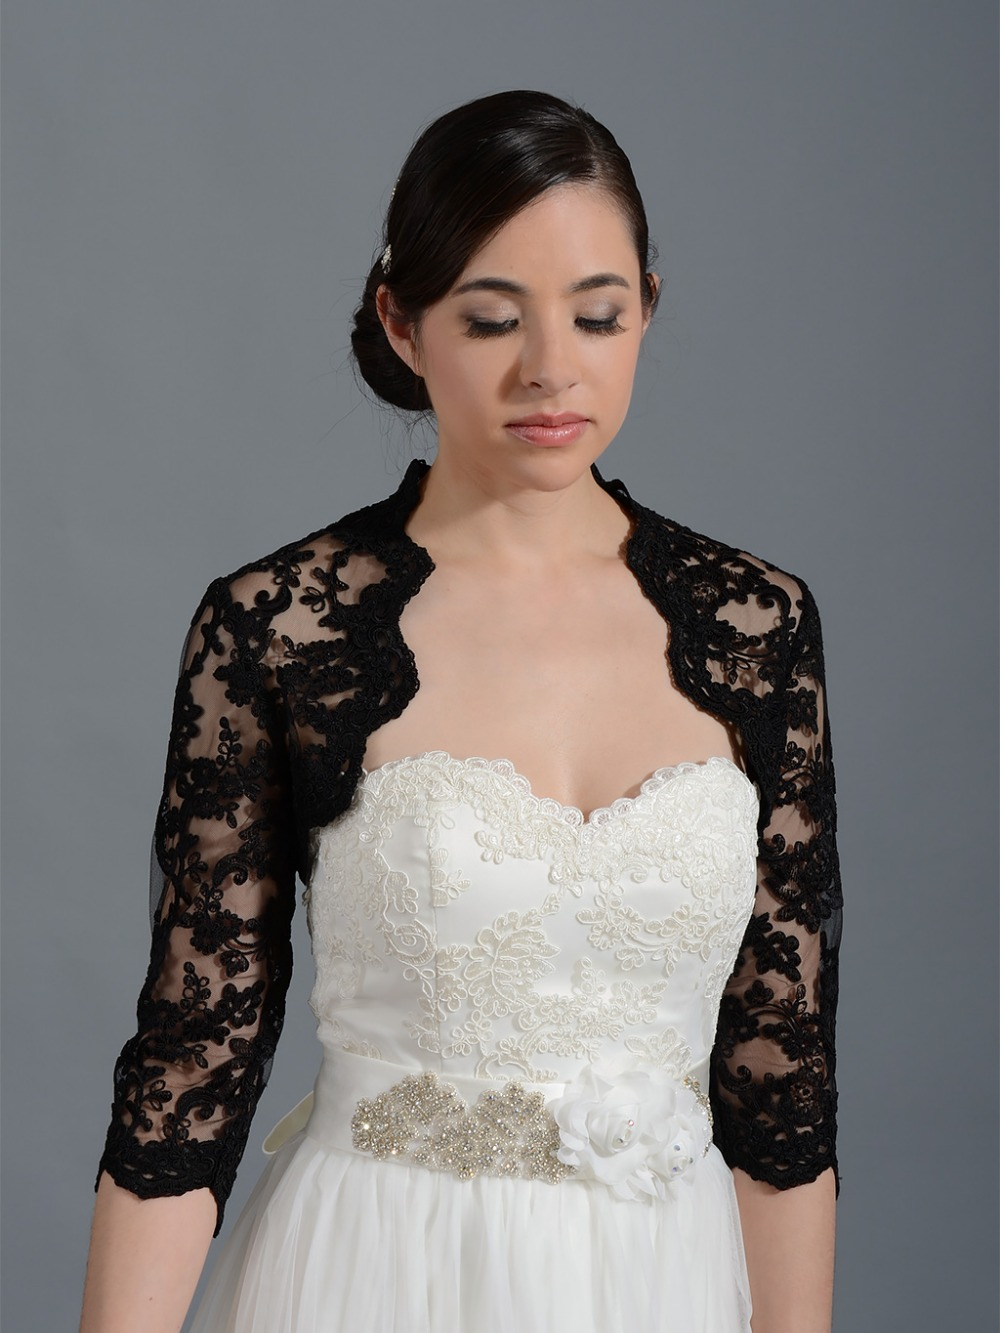 Home > All Bolero Jackets. Wedding jackets, bridesmaid jackets, special event formal jackets and shrugs. Wide variety of satin boleros, lace boleros and chiffon boleros. Black Lace Bolero Jacket Long Sleeve Wedding/Bridal,Prom. Regular price: $ Sale price: $ White Lace Bolero Jacket Long Sleeve Wedding/Bridal,Prom.